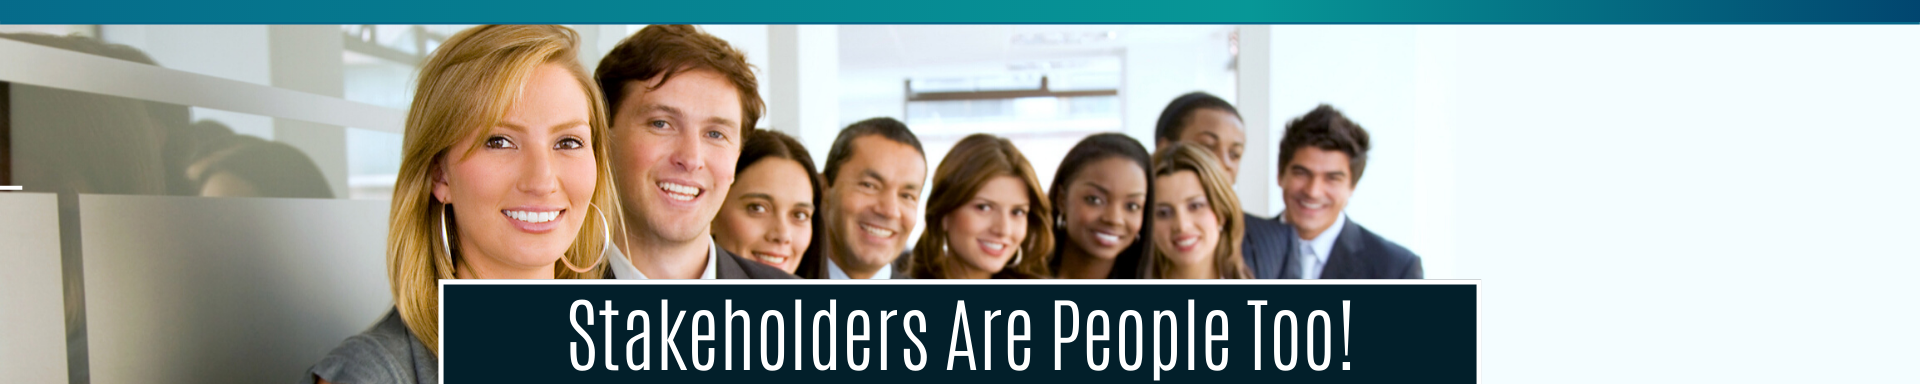 Stakeholders Are People Too!